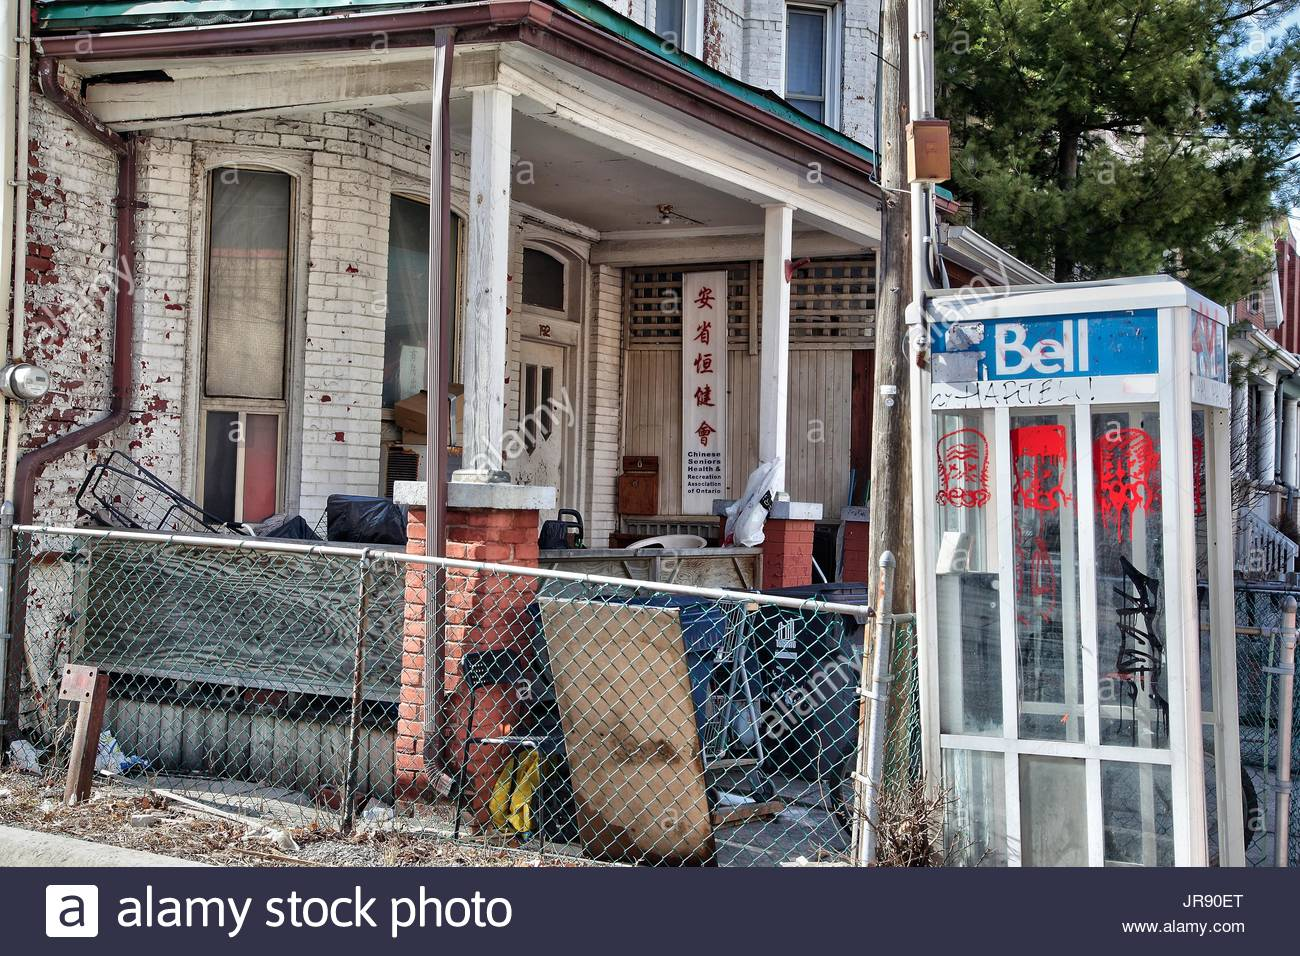 Run-down house in Toronto, Ontario, Canada. - Stock Image